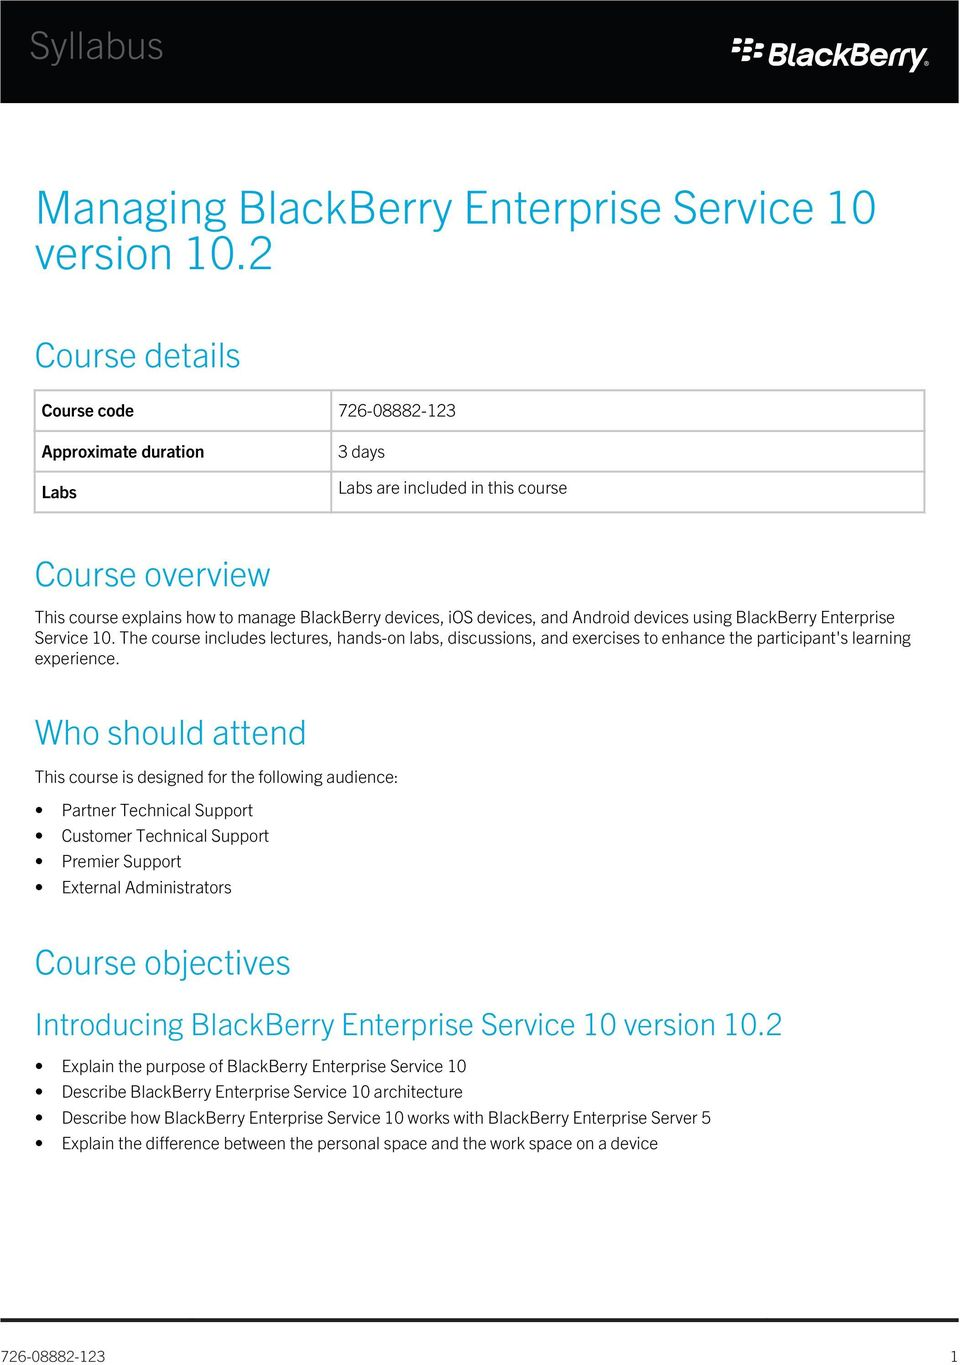 Android devices using BlackBerry Enterprise Service 10. The course includes lectures, hands-on labs, discussions, and exercises to enhance the participant's learning experience.